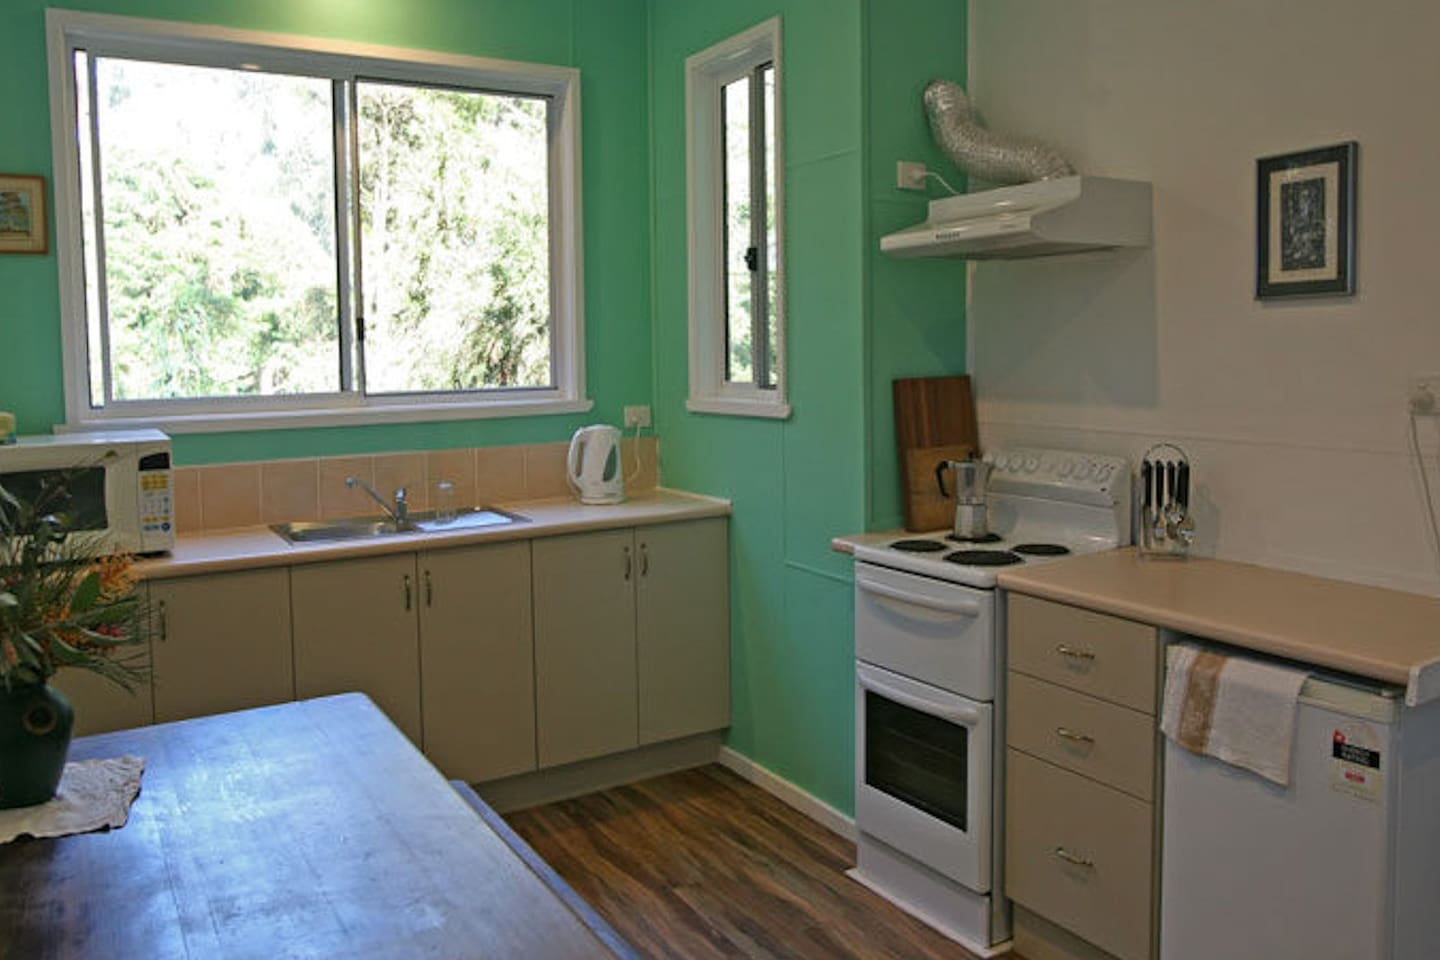 Fresh and clean kitchen - has all you need!